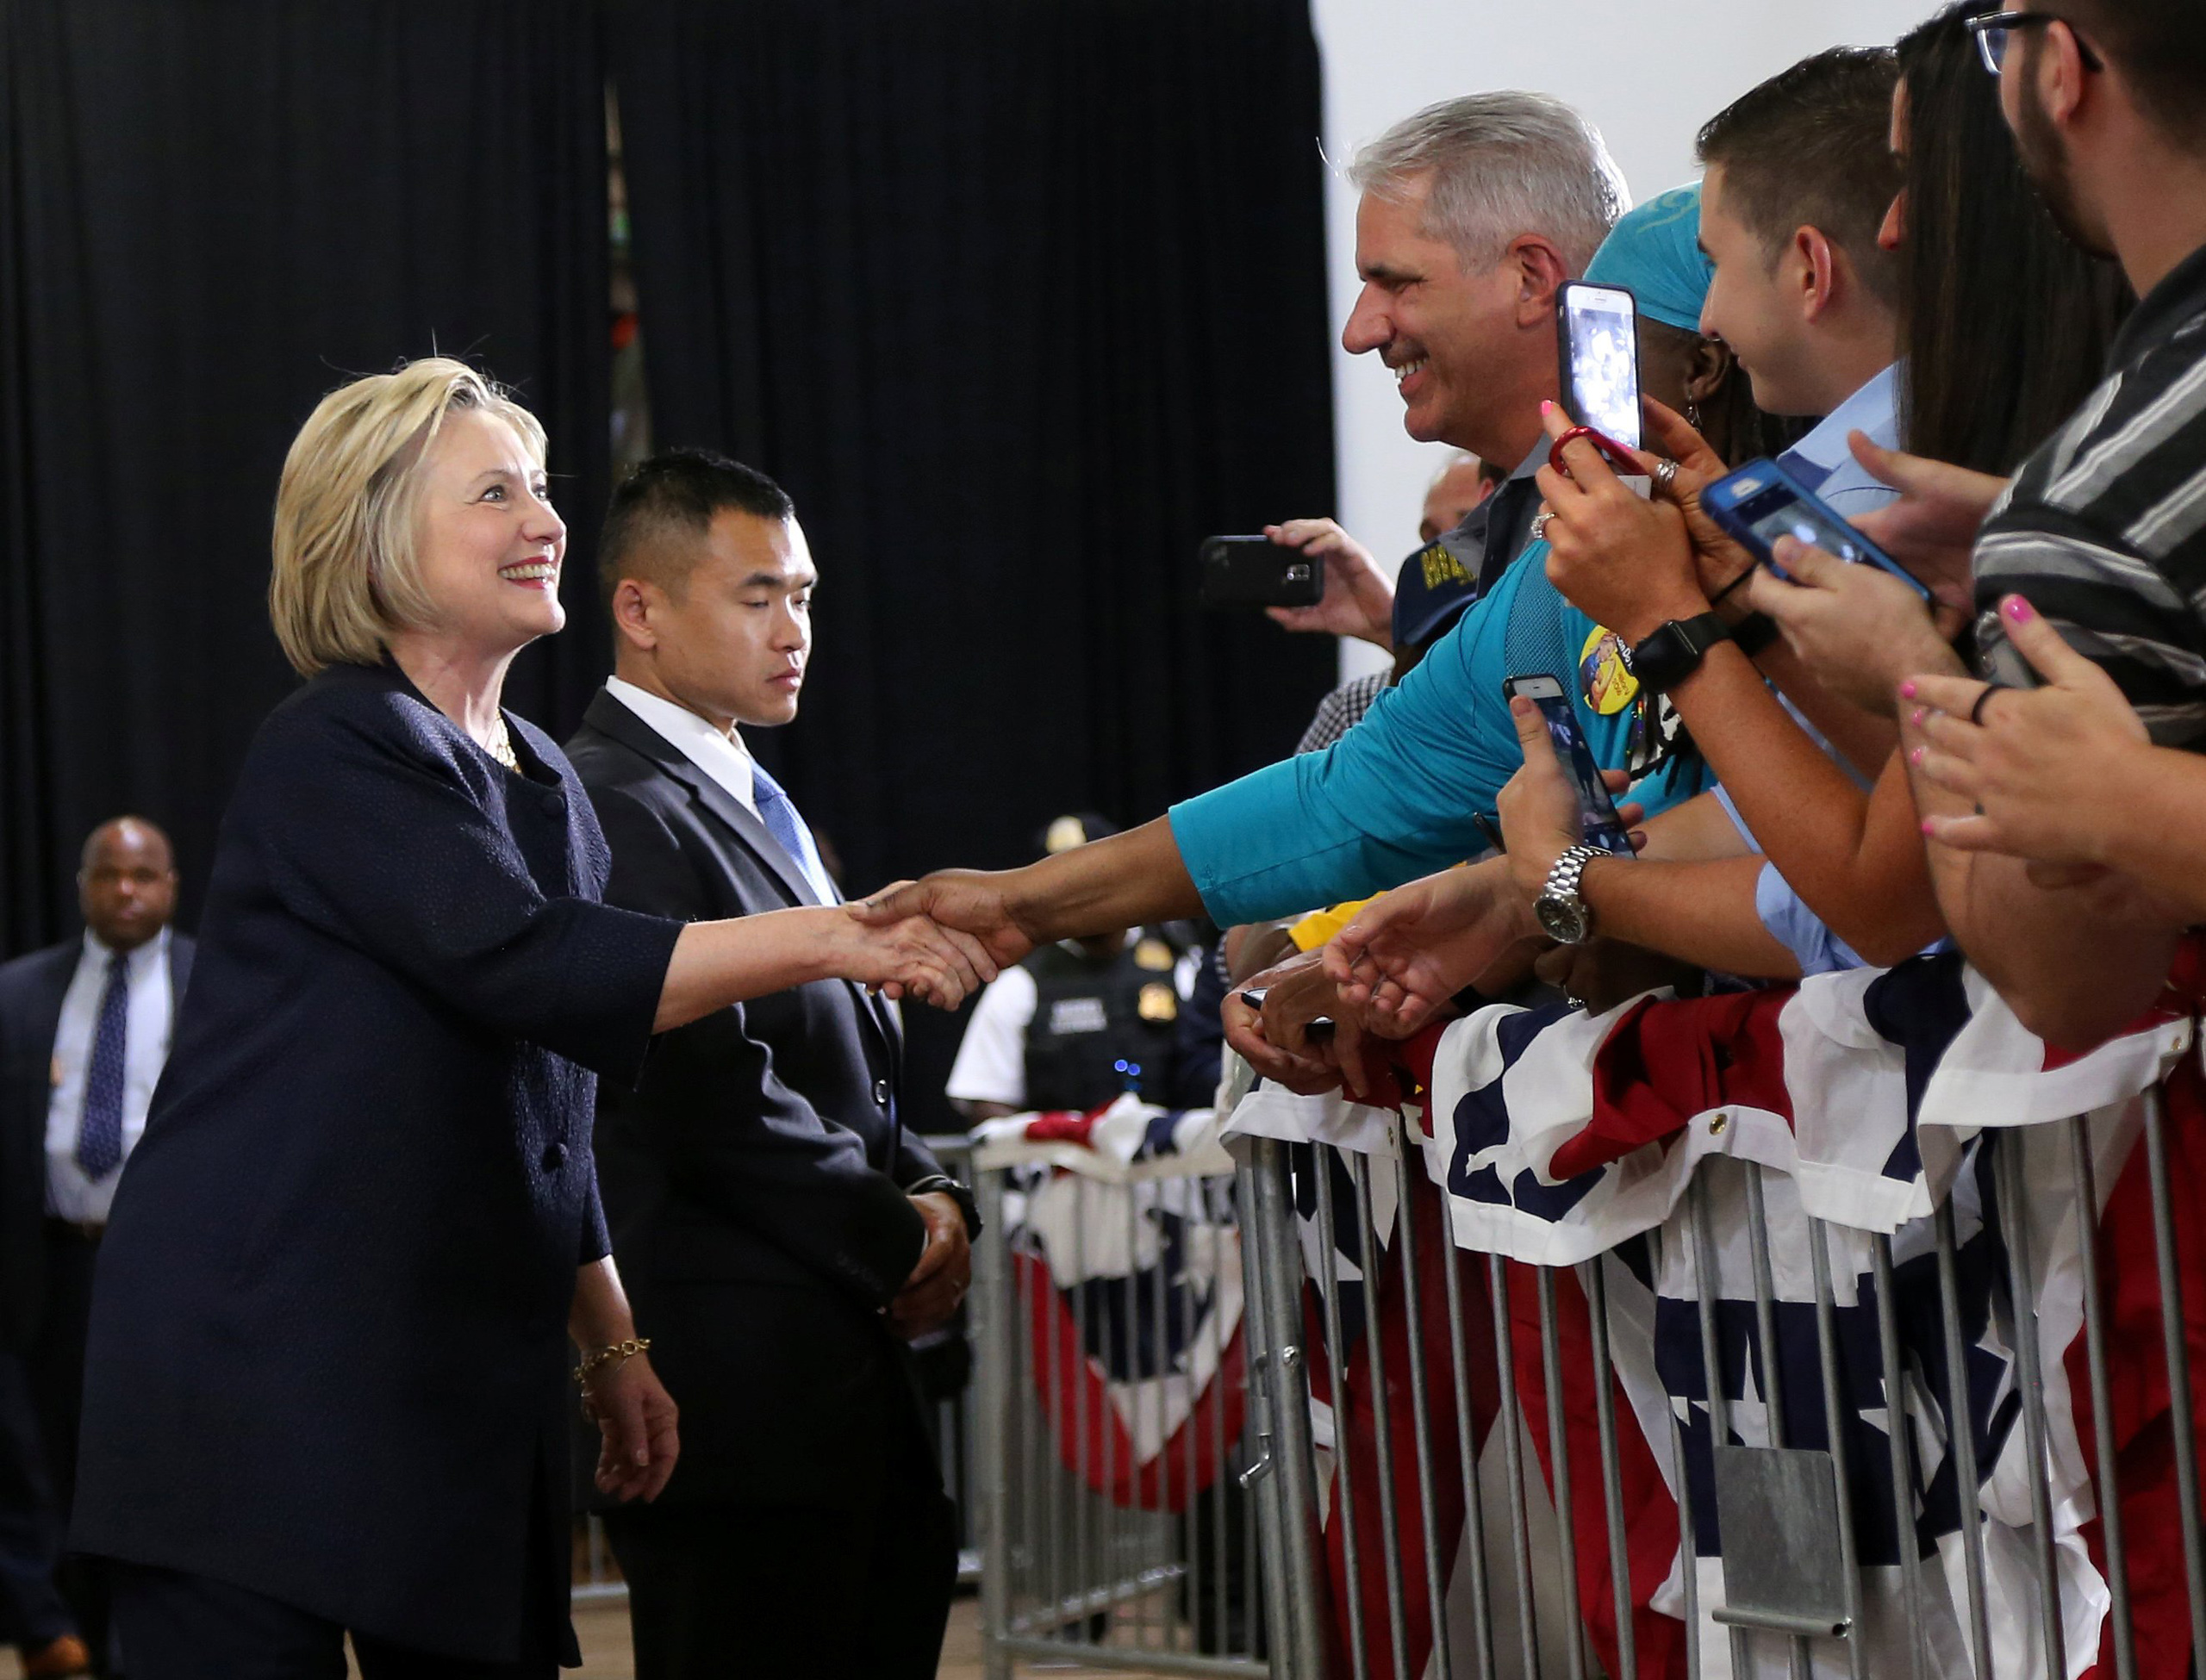 Democratic U.S. presidential candidate Hillary Clinton shakes hands with supporters before speaking at a campaign rally in Cleveland on June 13, 2016.